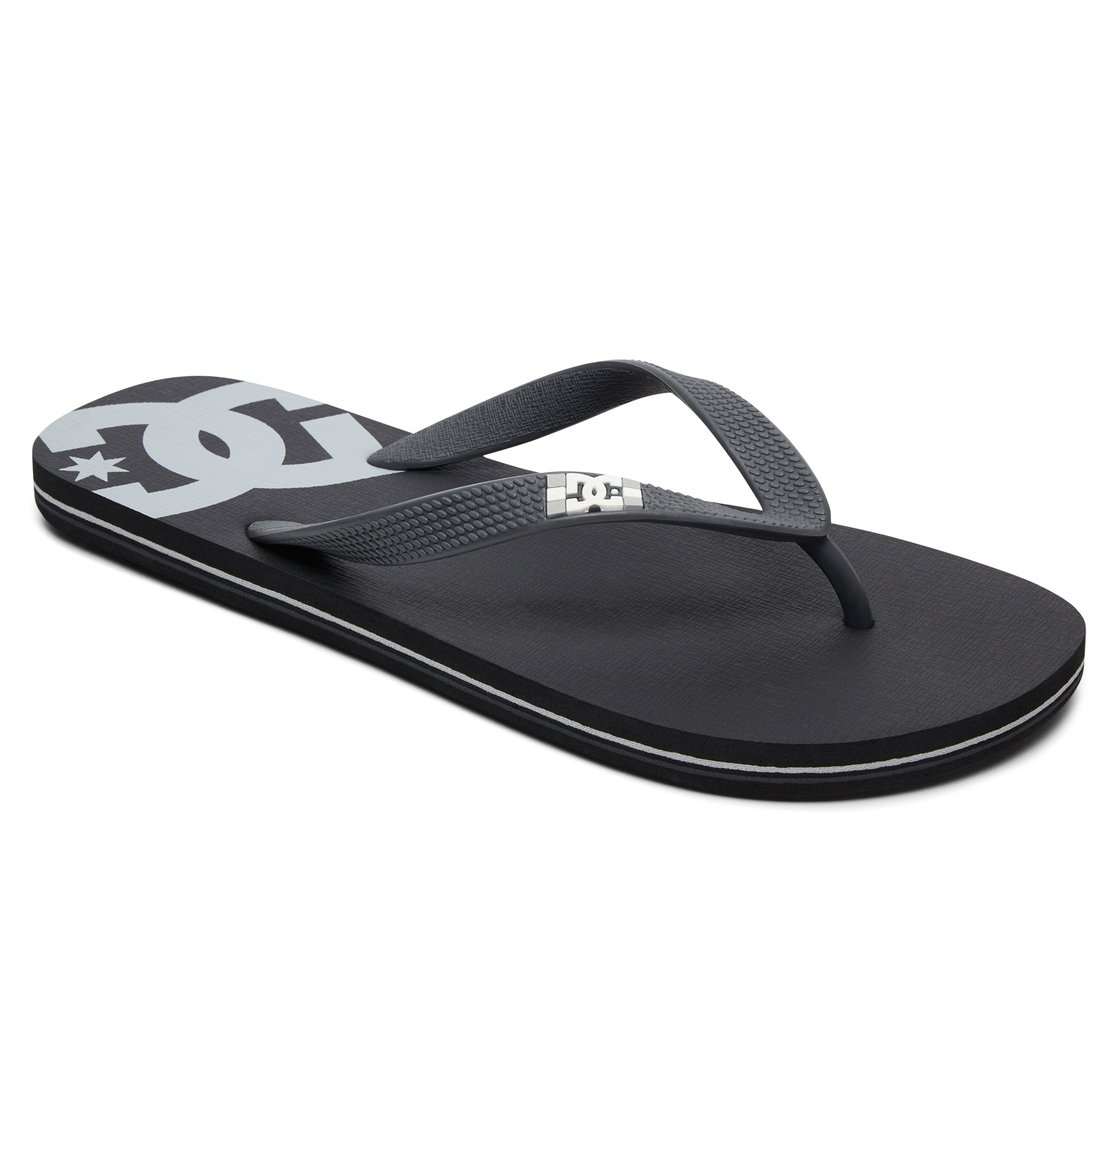 DC Shoes Spray Chancletas negro-blanco Alta calidad yBRNvmaE